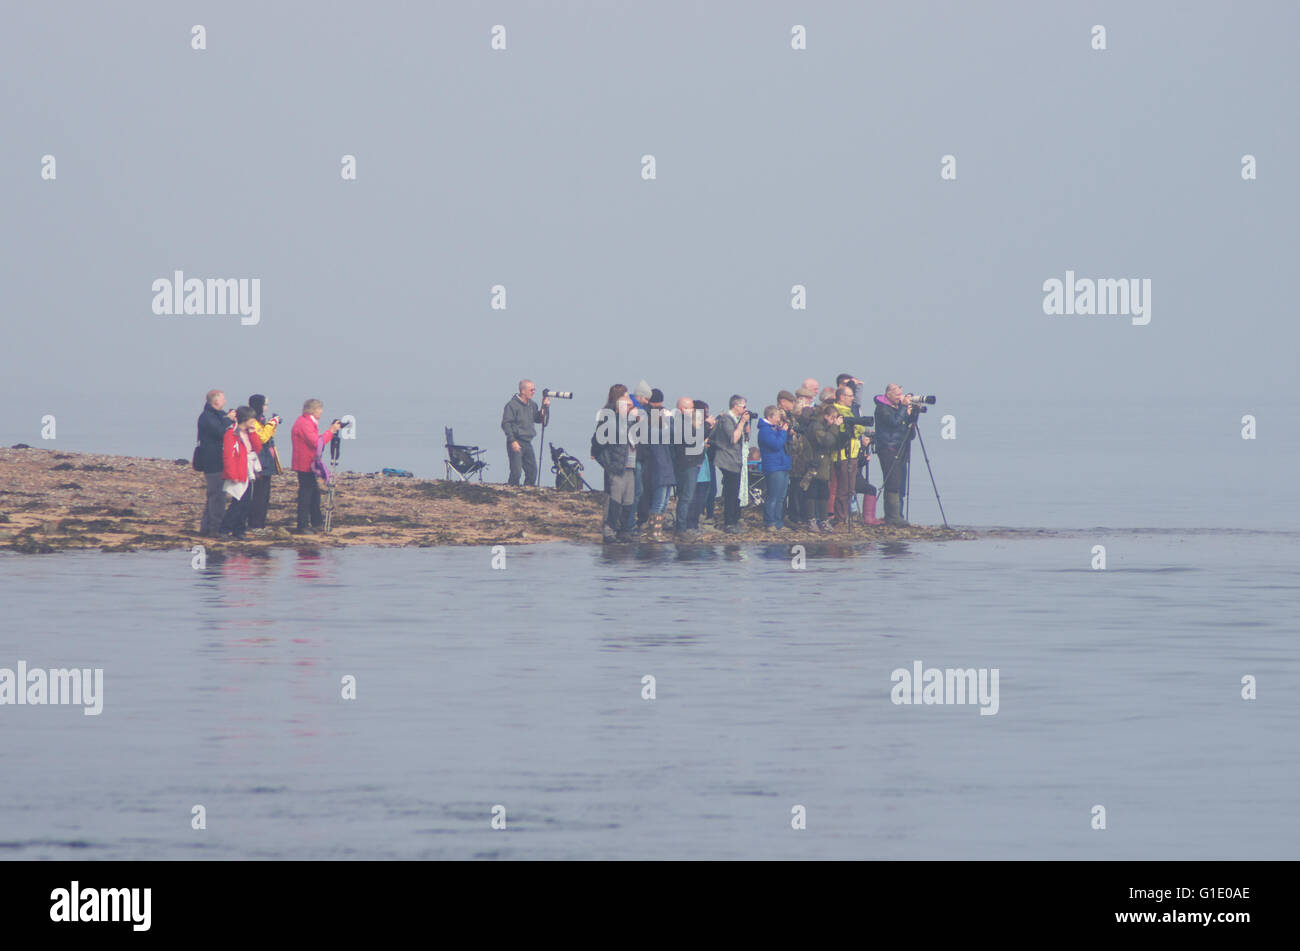 People gathering on a beach to watch dolphins - Stock Image